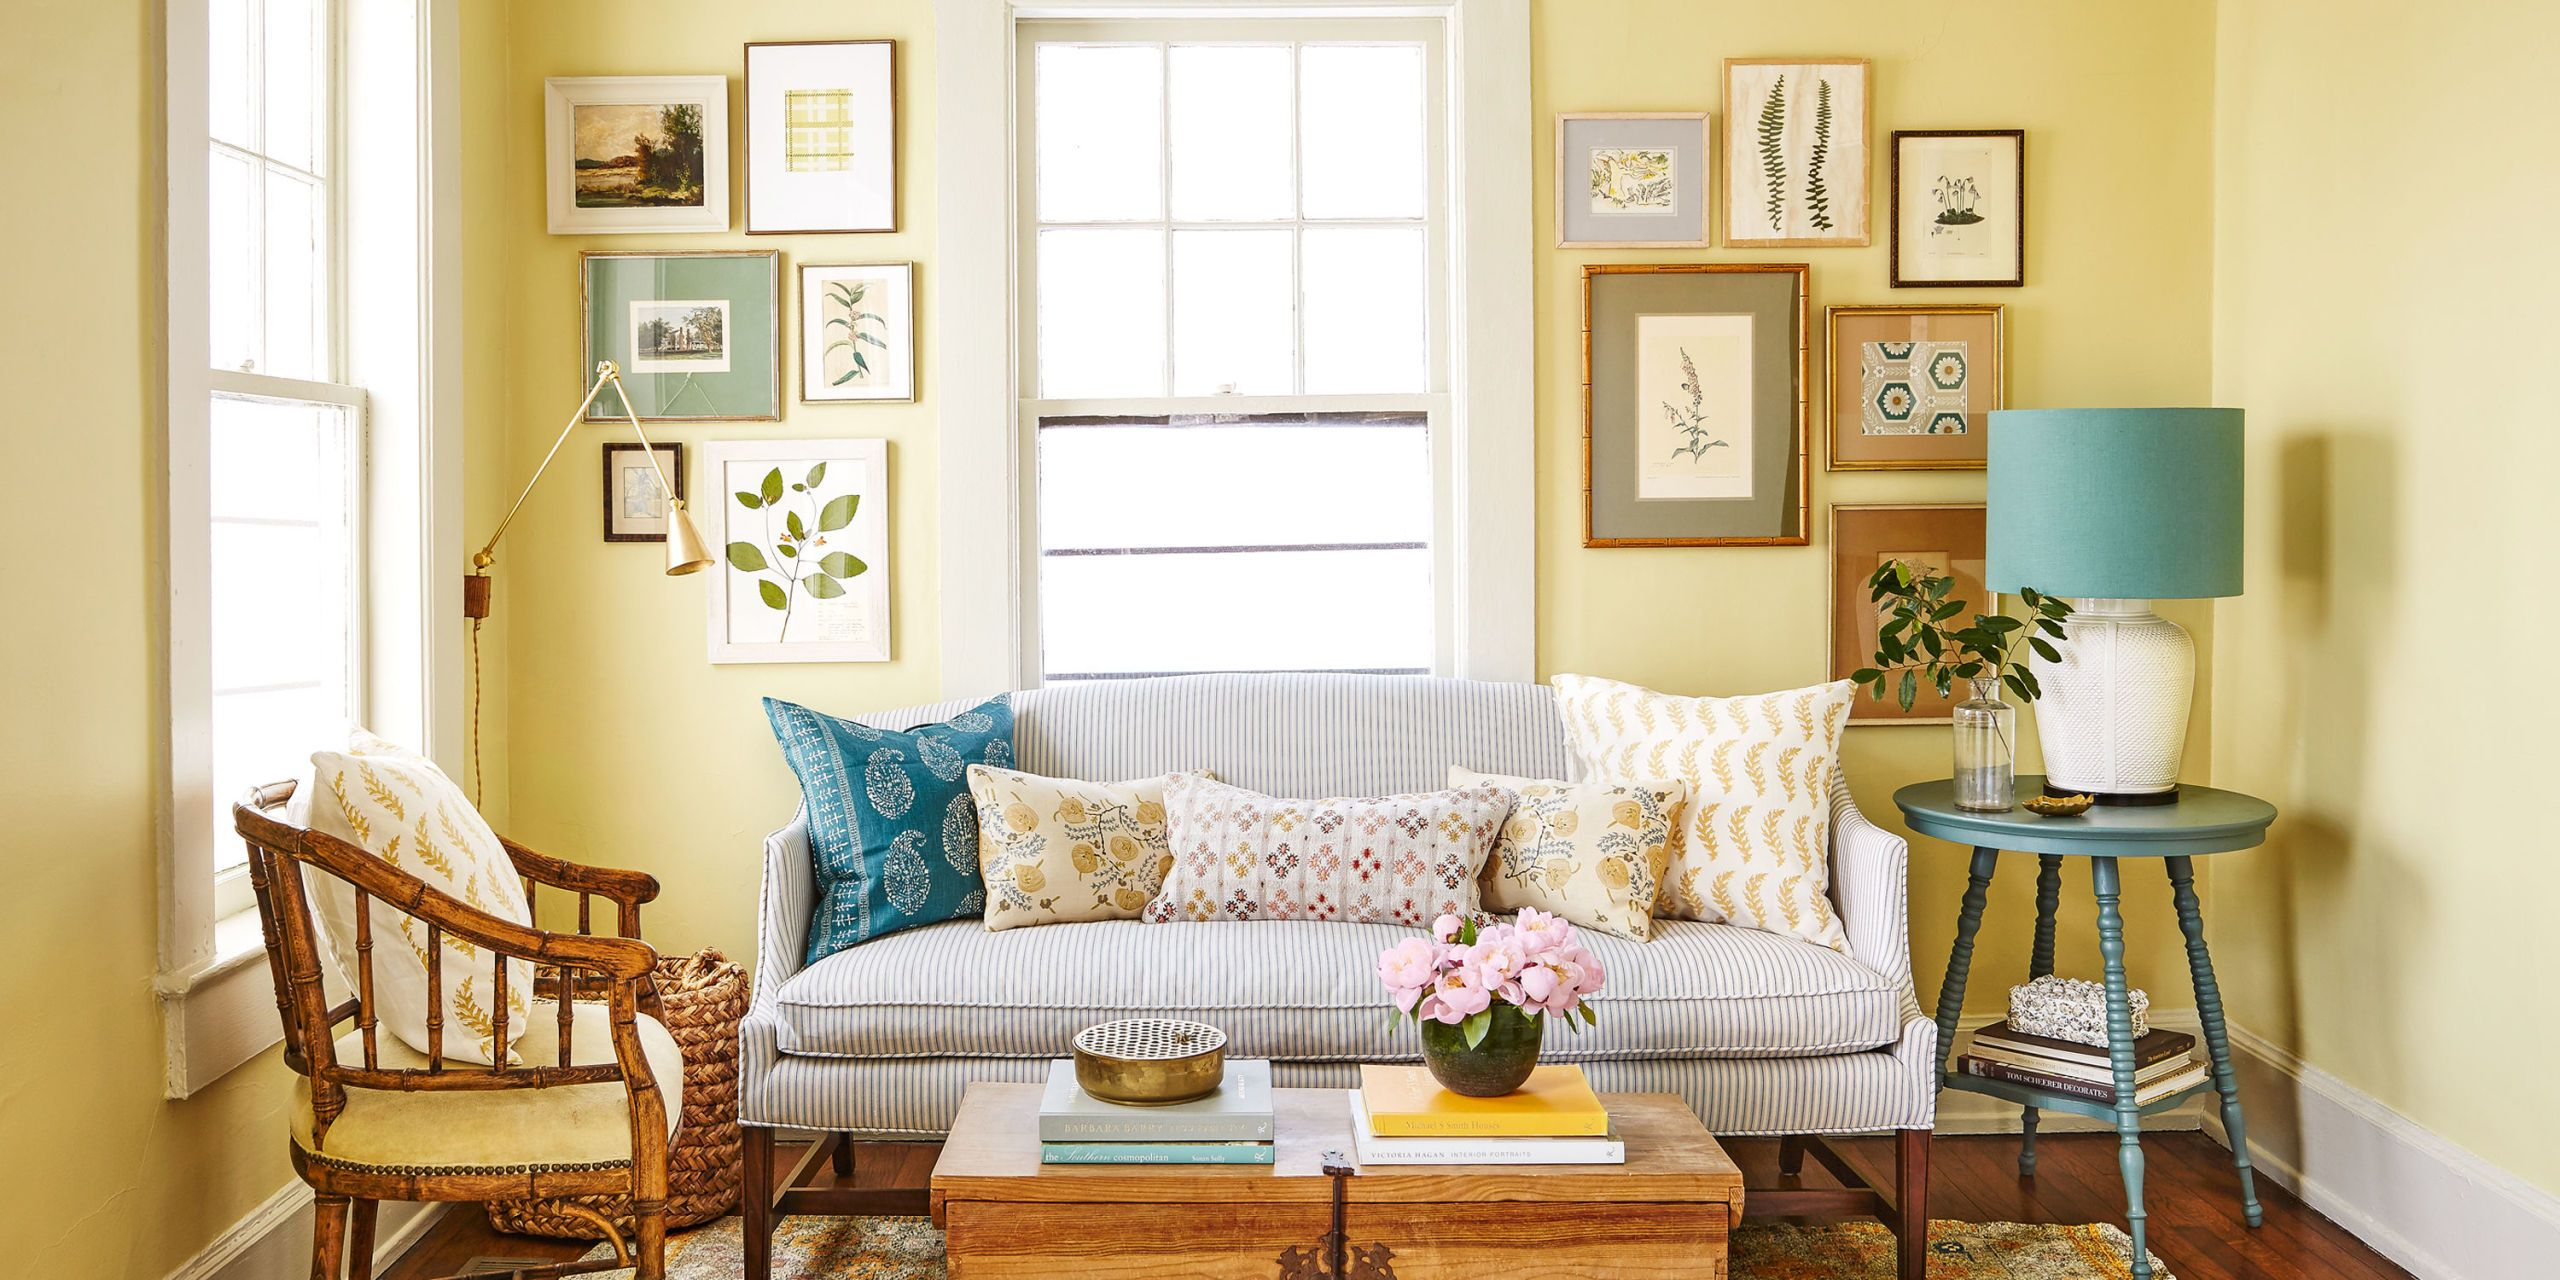 Incroyable These Design Ideas Will Help You Transform Your Living Room Into A Cozy  Retreat.